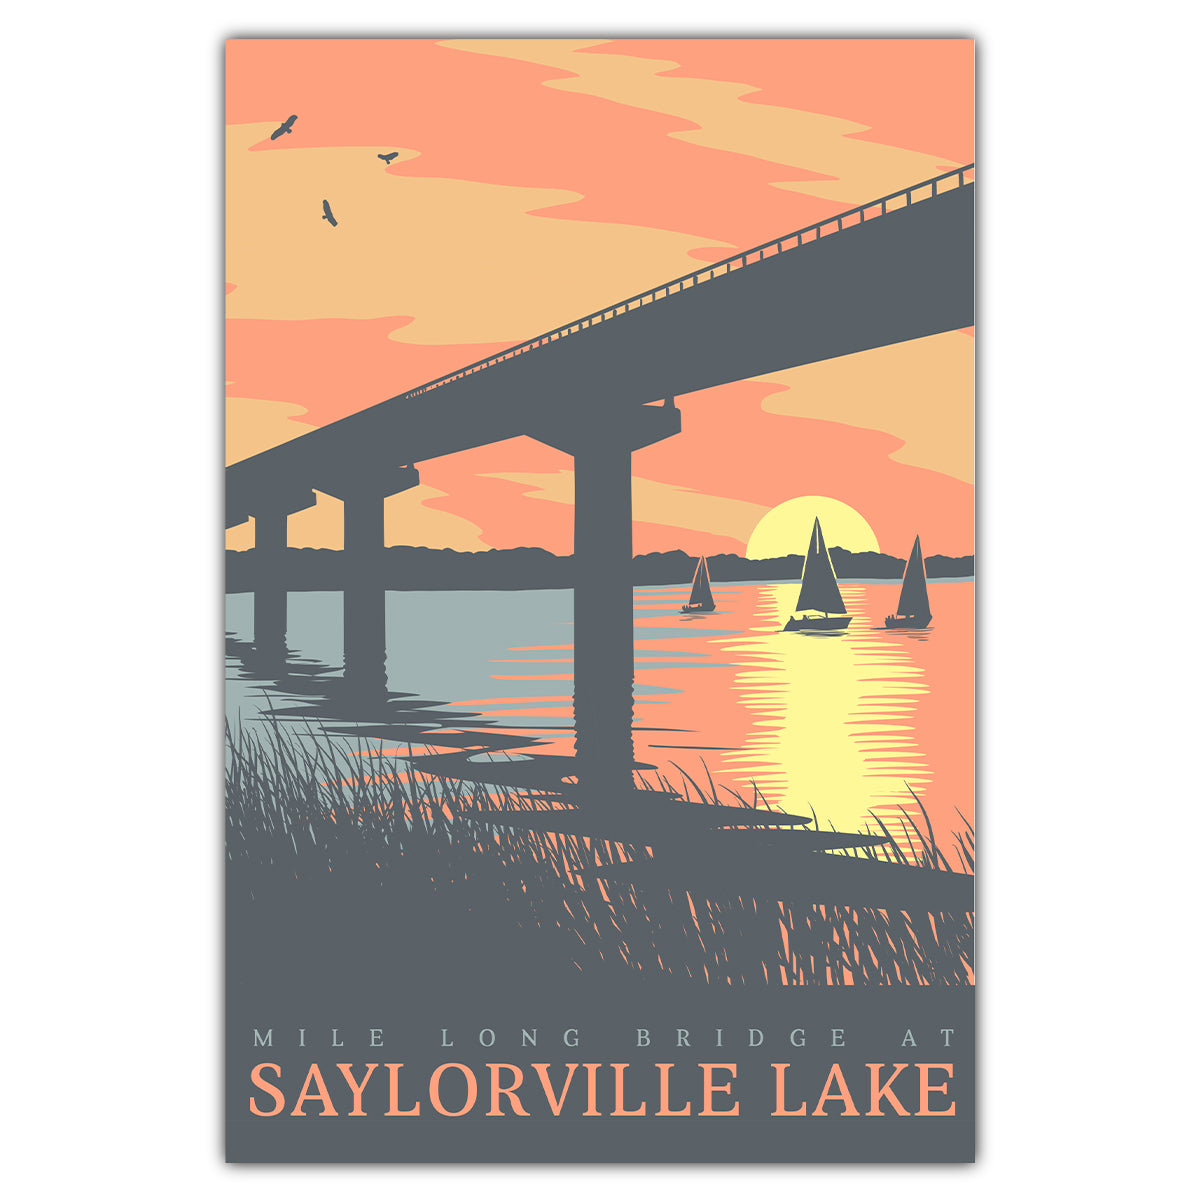 Saylorville Lake Bridge Sunset Postcard